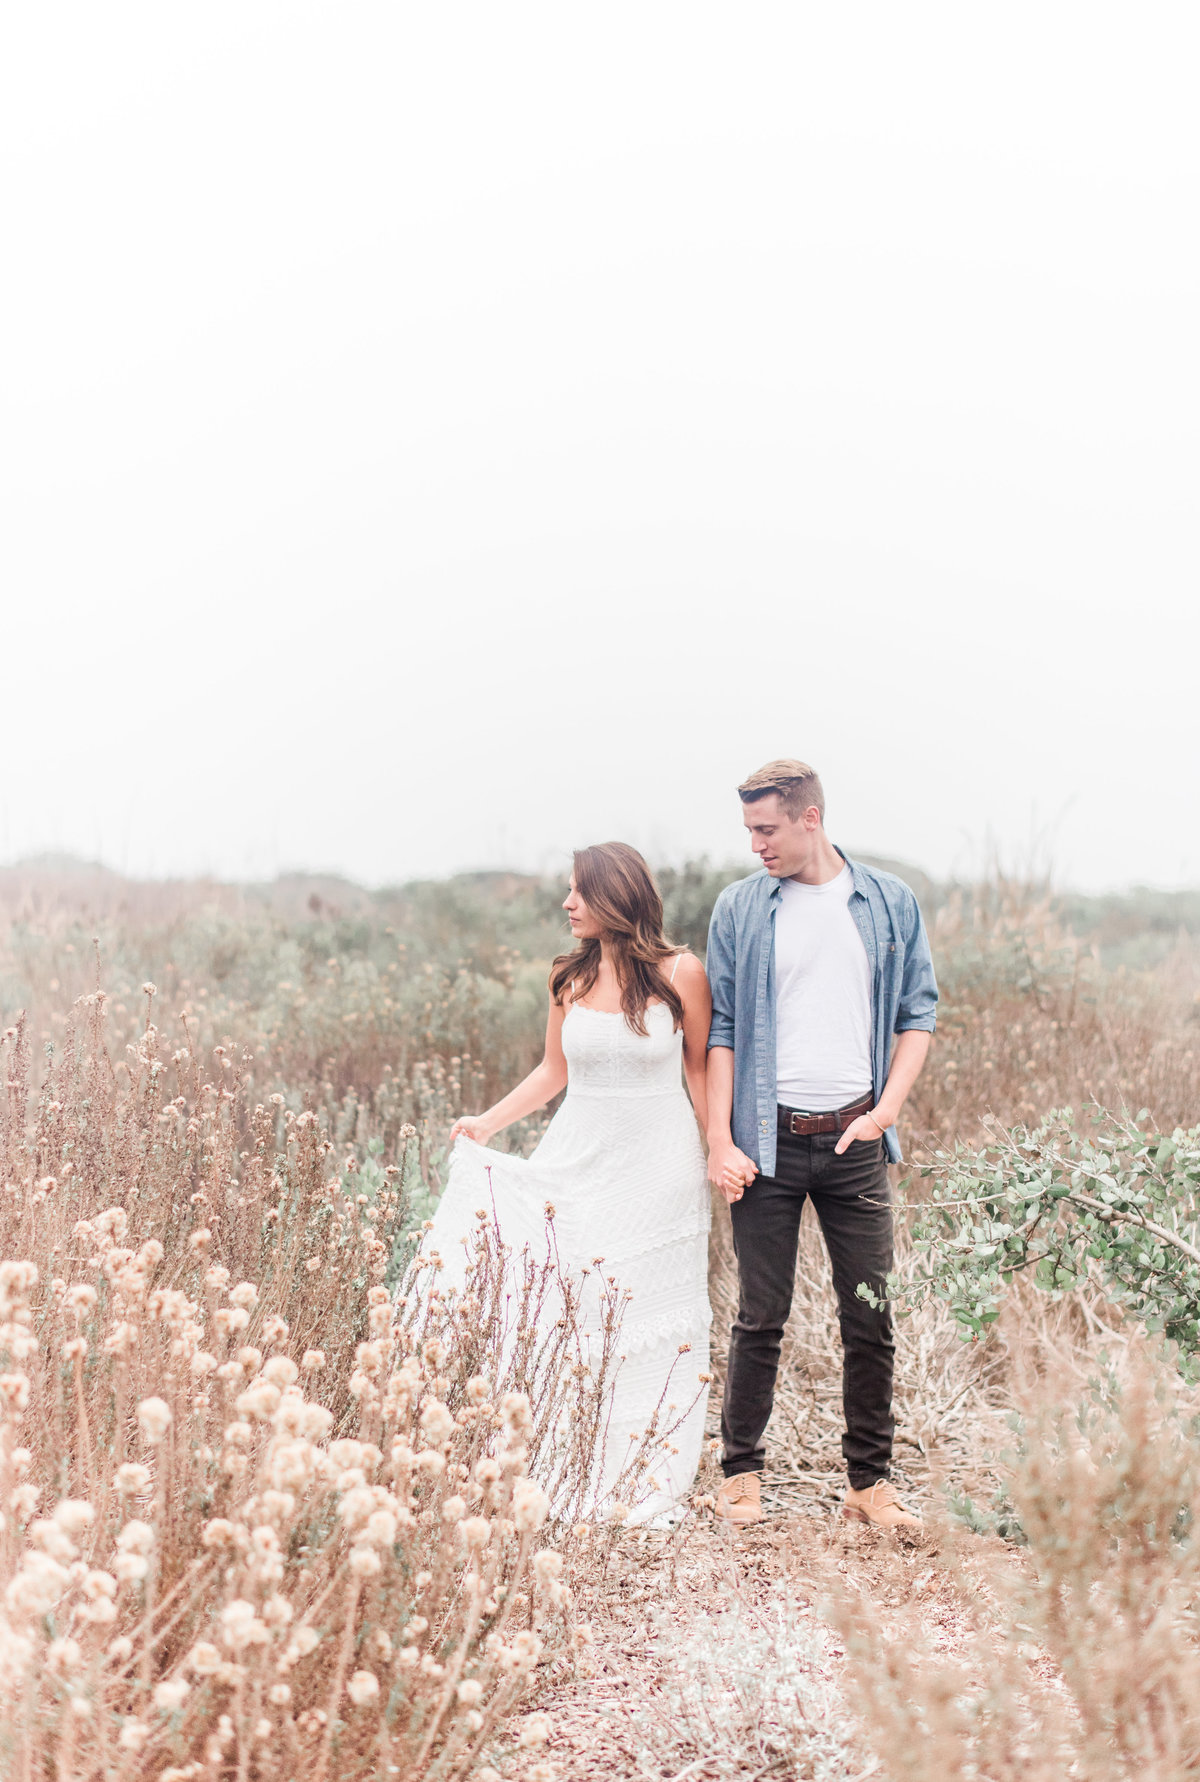 Hannah Smith Photography-7358